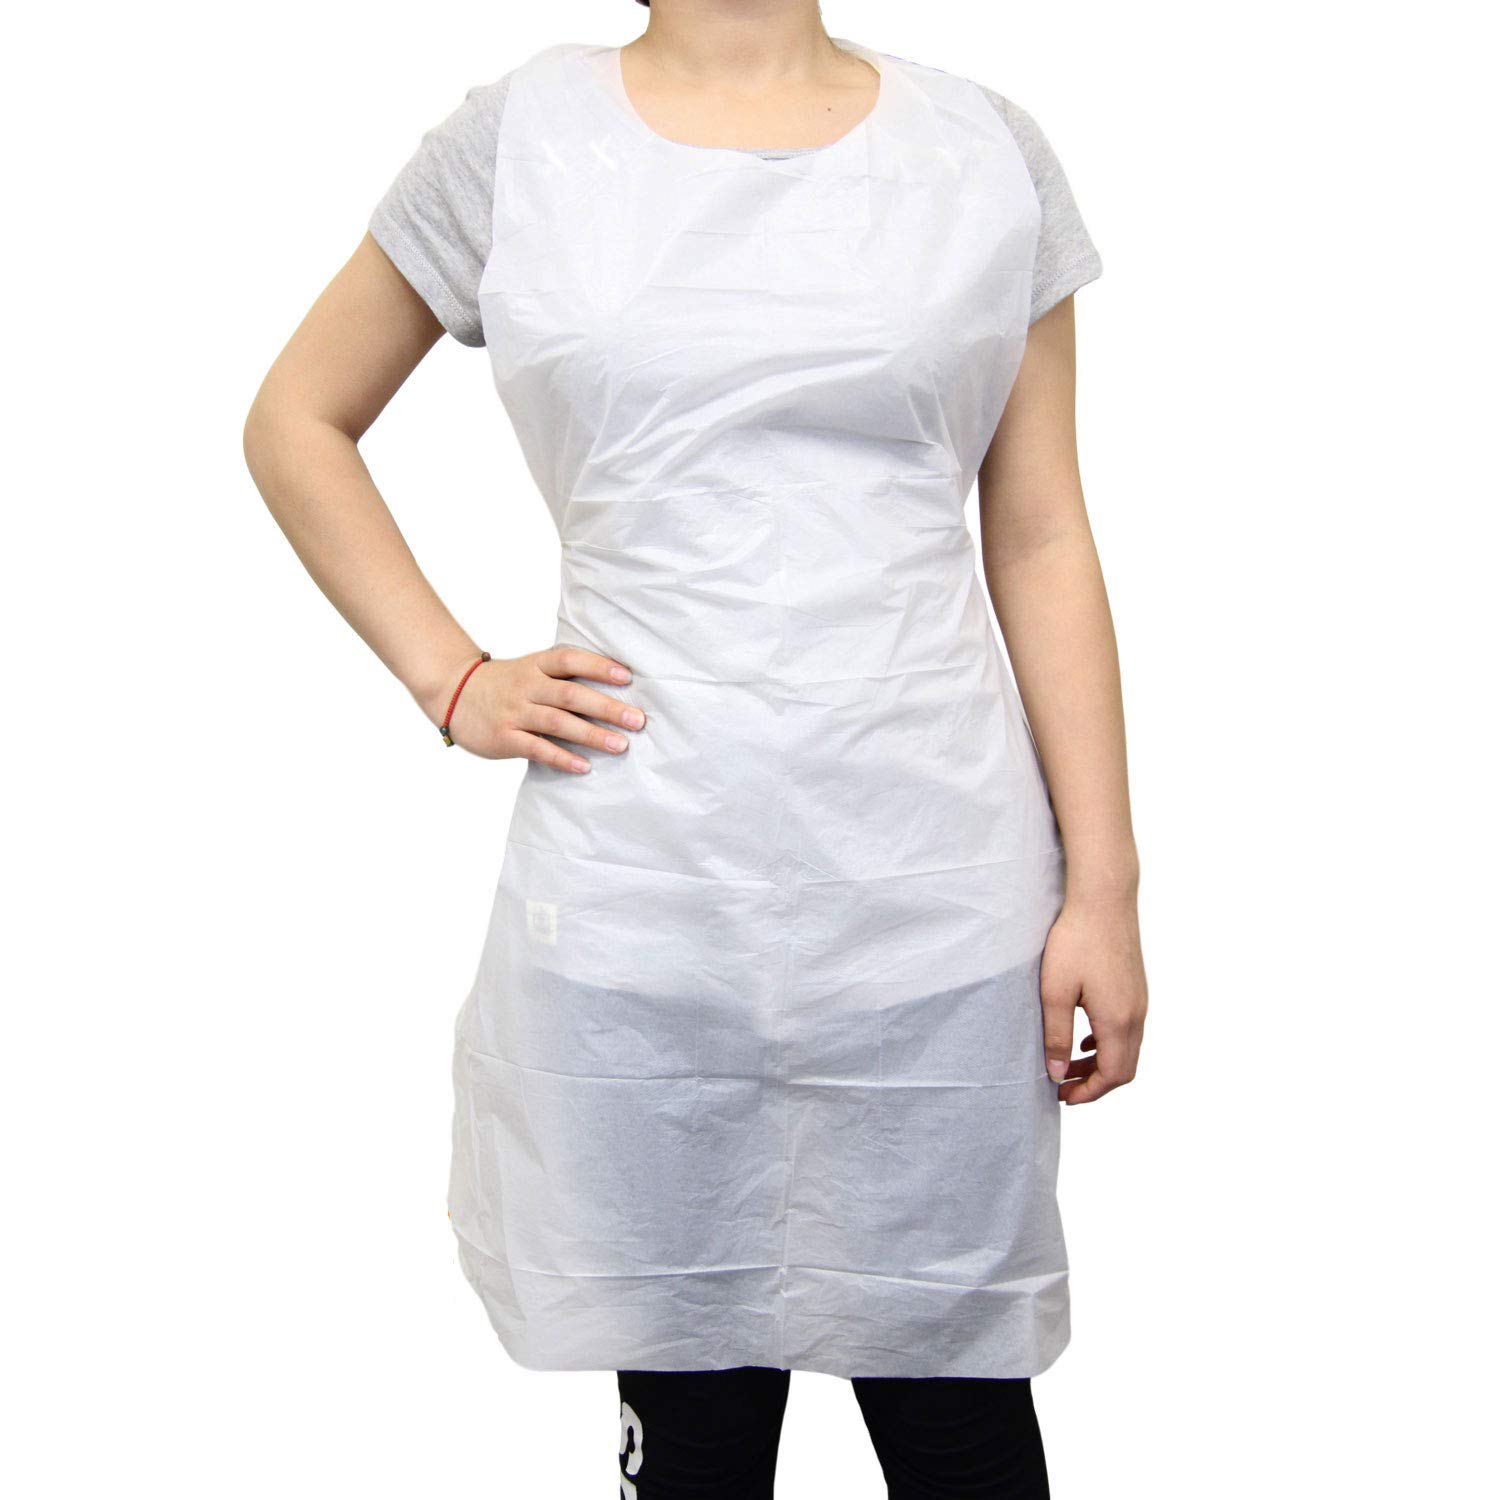 Disposable 24''x42'' Medium Waterproof Grease Resistant Poly Adult Women Men Bib Apron with Dispenser Box, White [100 Pack]